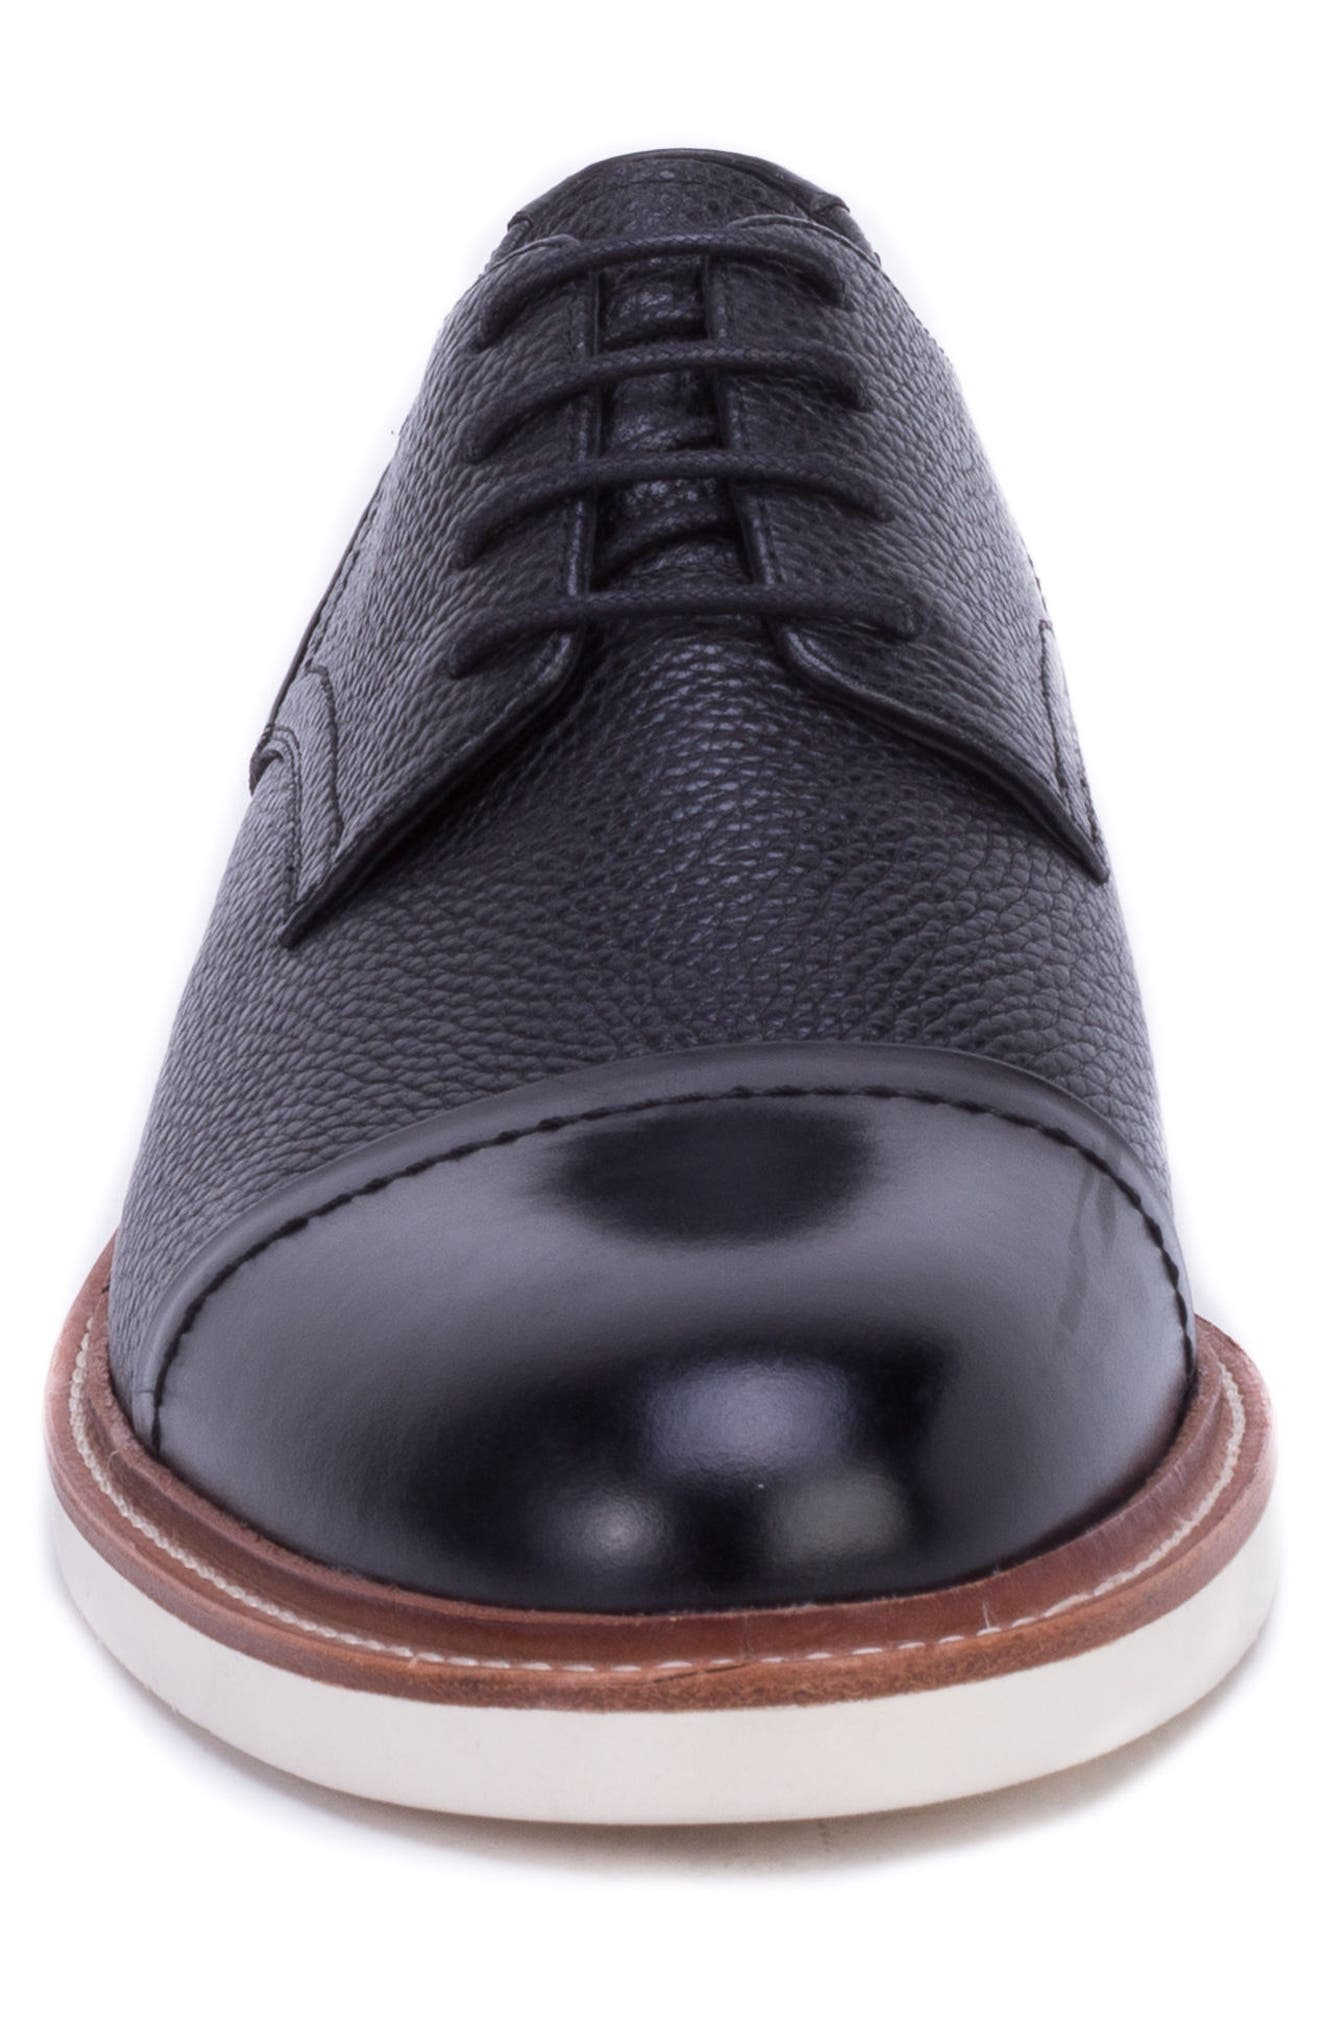 Wensley Cap Toe Derby,                             Alternate thumbnail 4, color,                             BLACK LEATHER